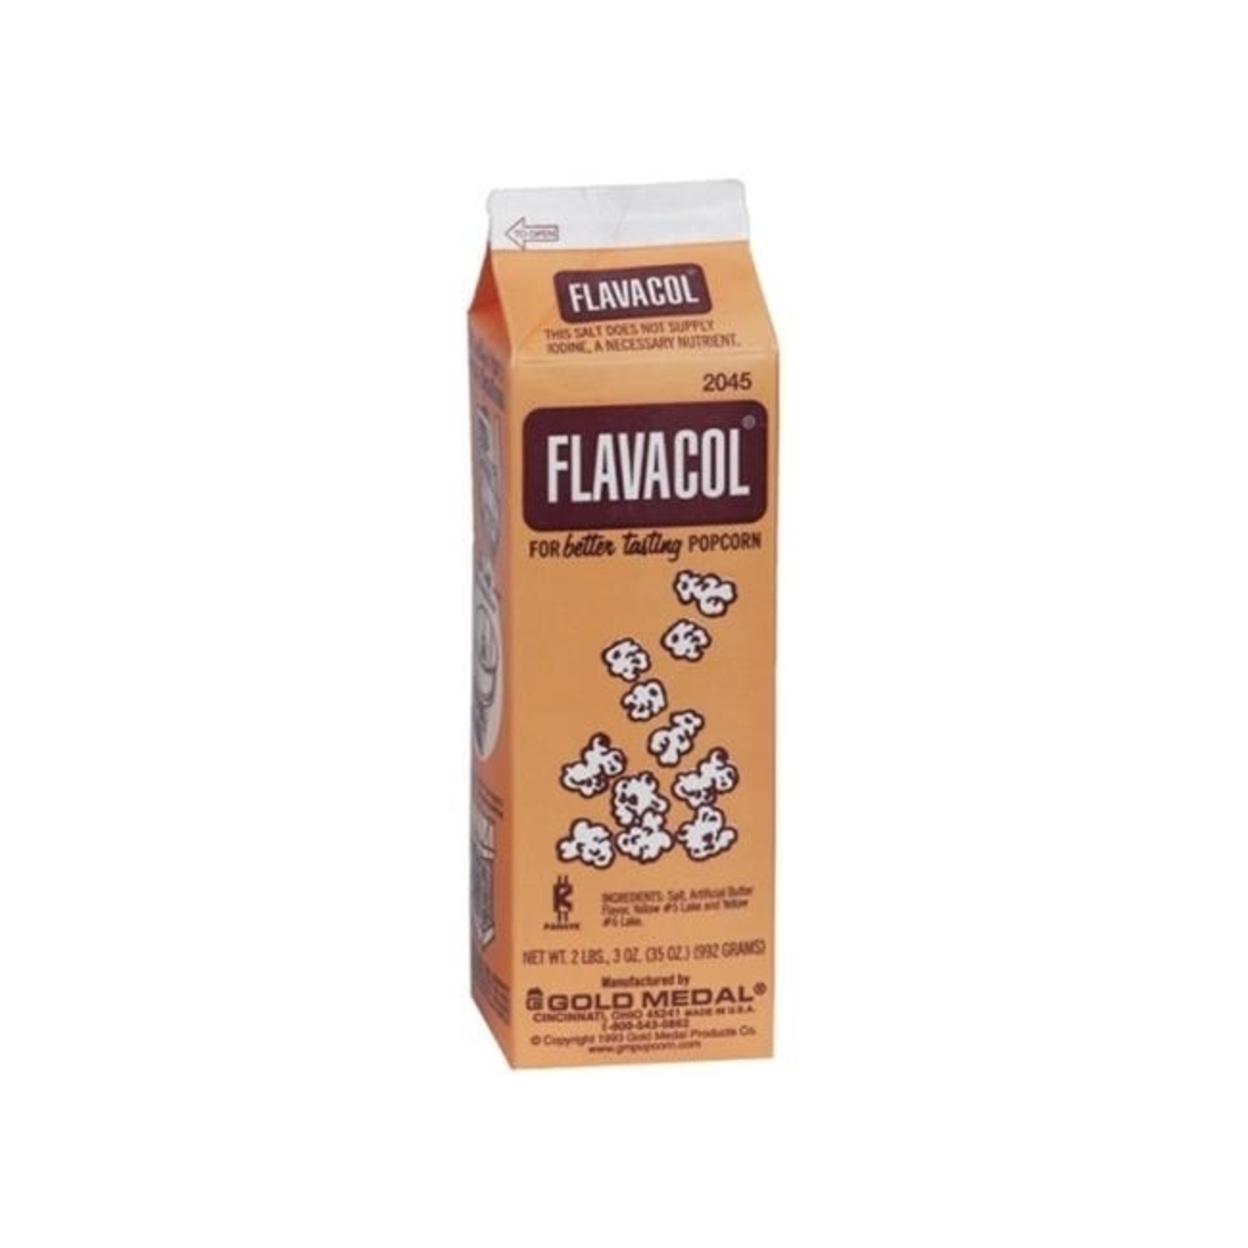 Gold Medal 2045 Flavacol Popcorn Salt 35 oz - pack of 12 5a399da12a00e433f72cfc28